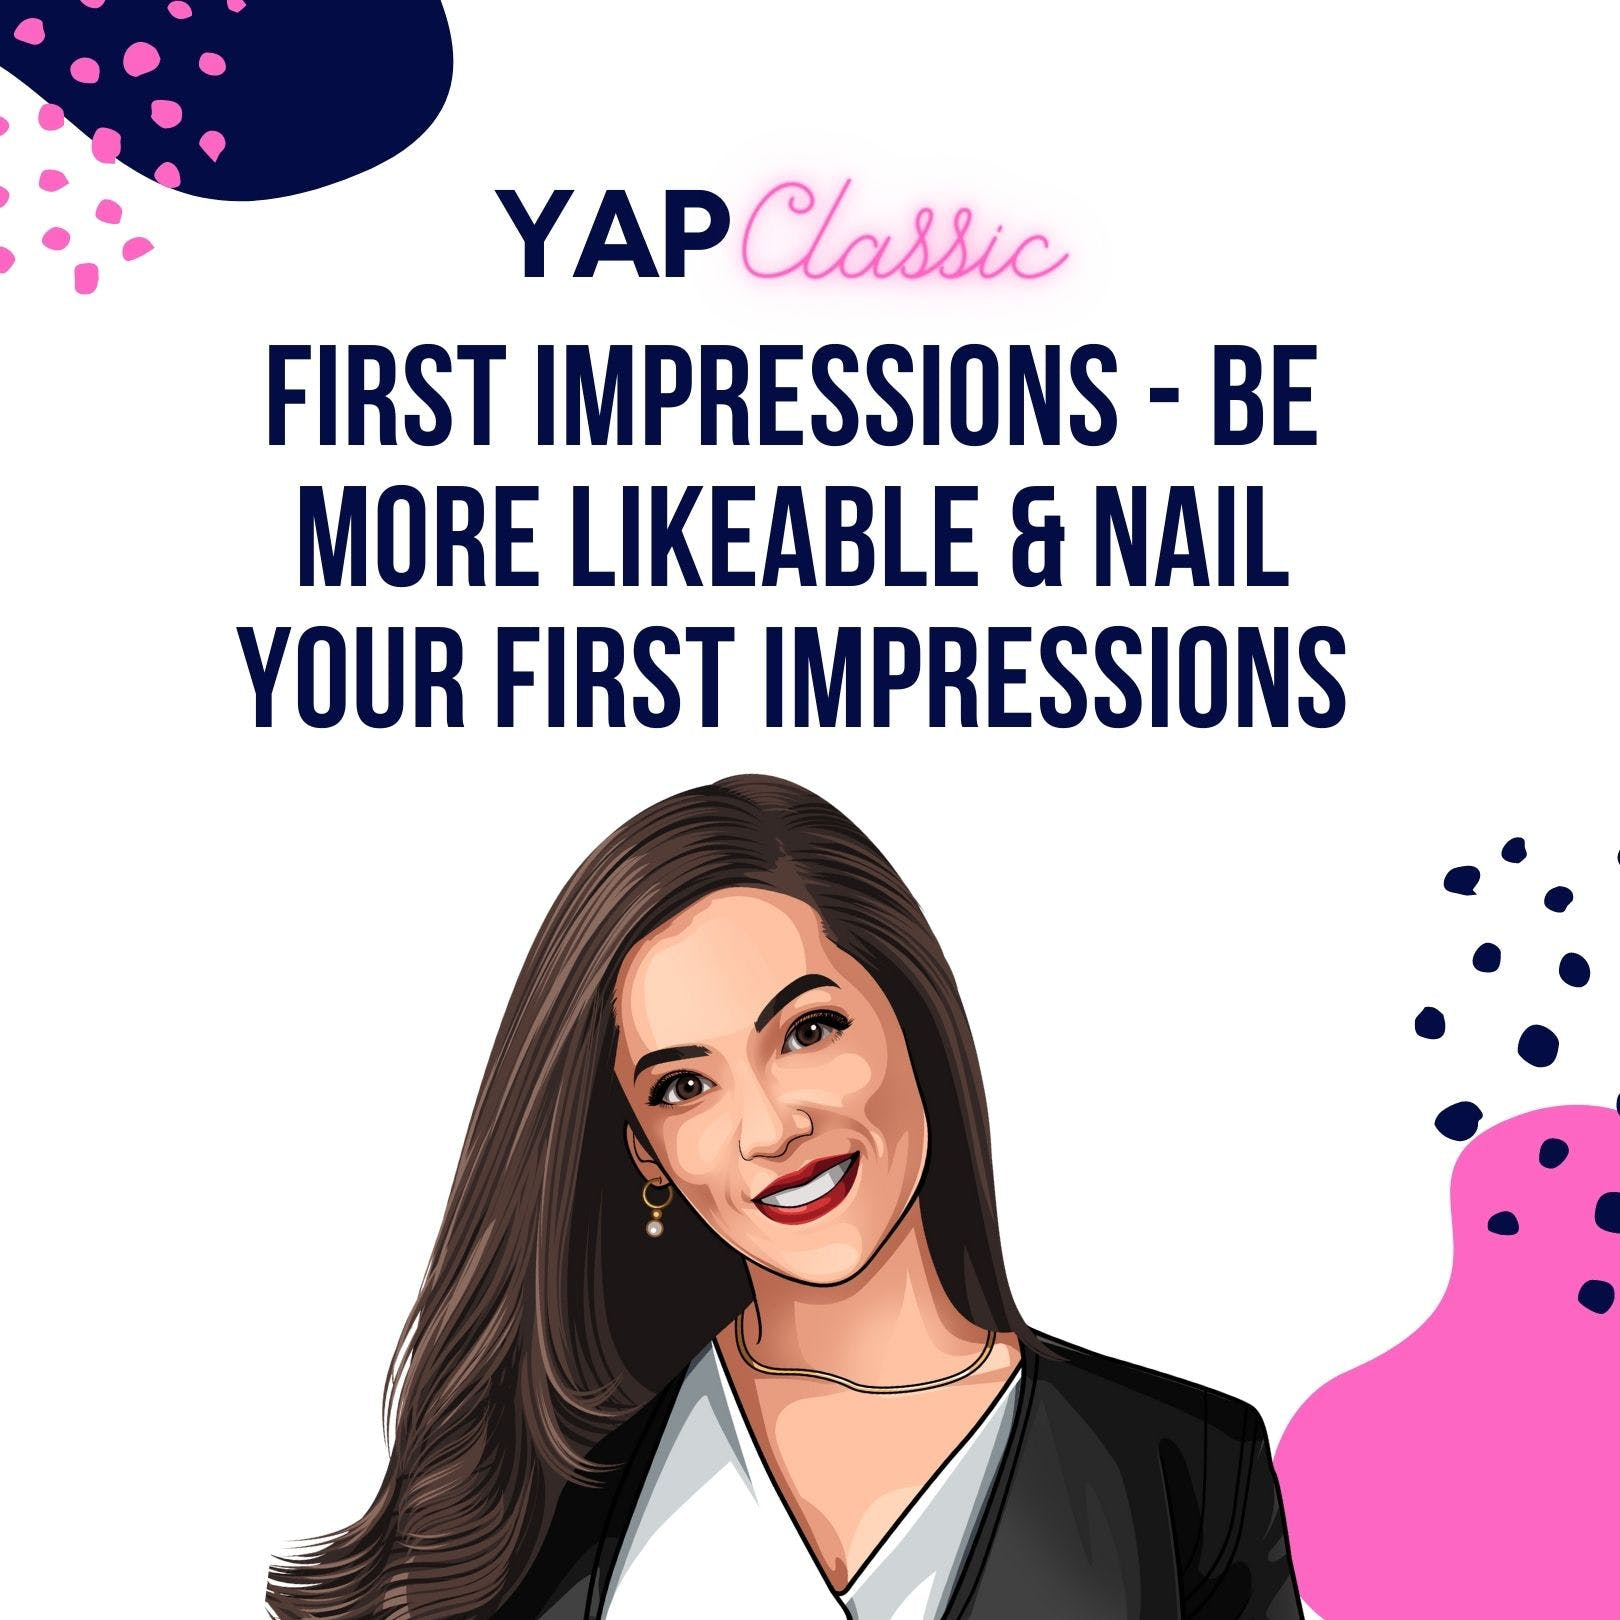 #YAPClassic: First Impressions: Be More Likeable and Nail Your First Impressions